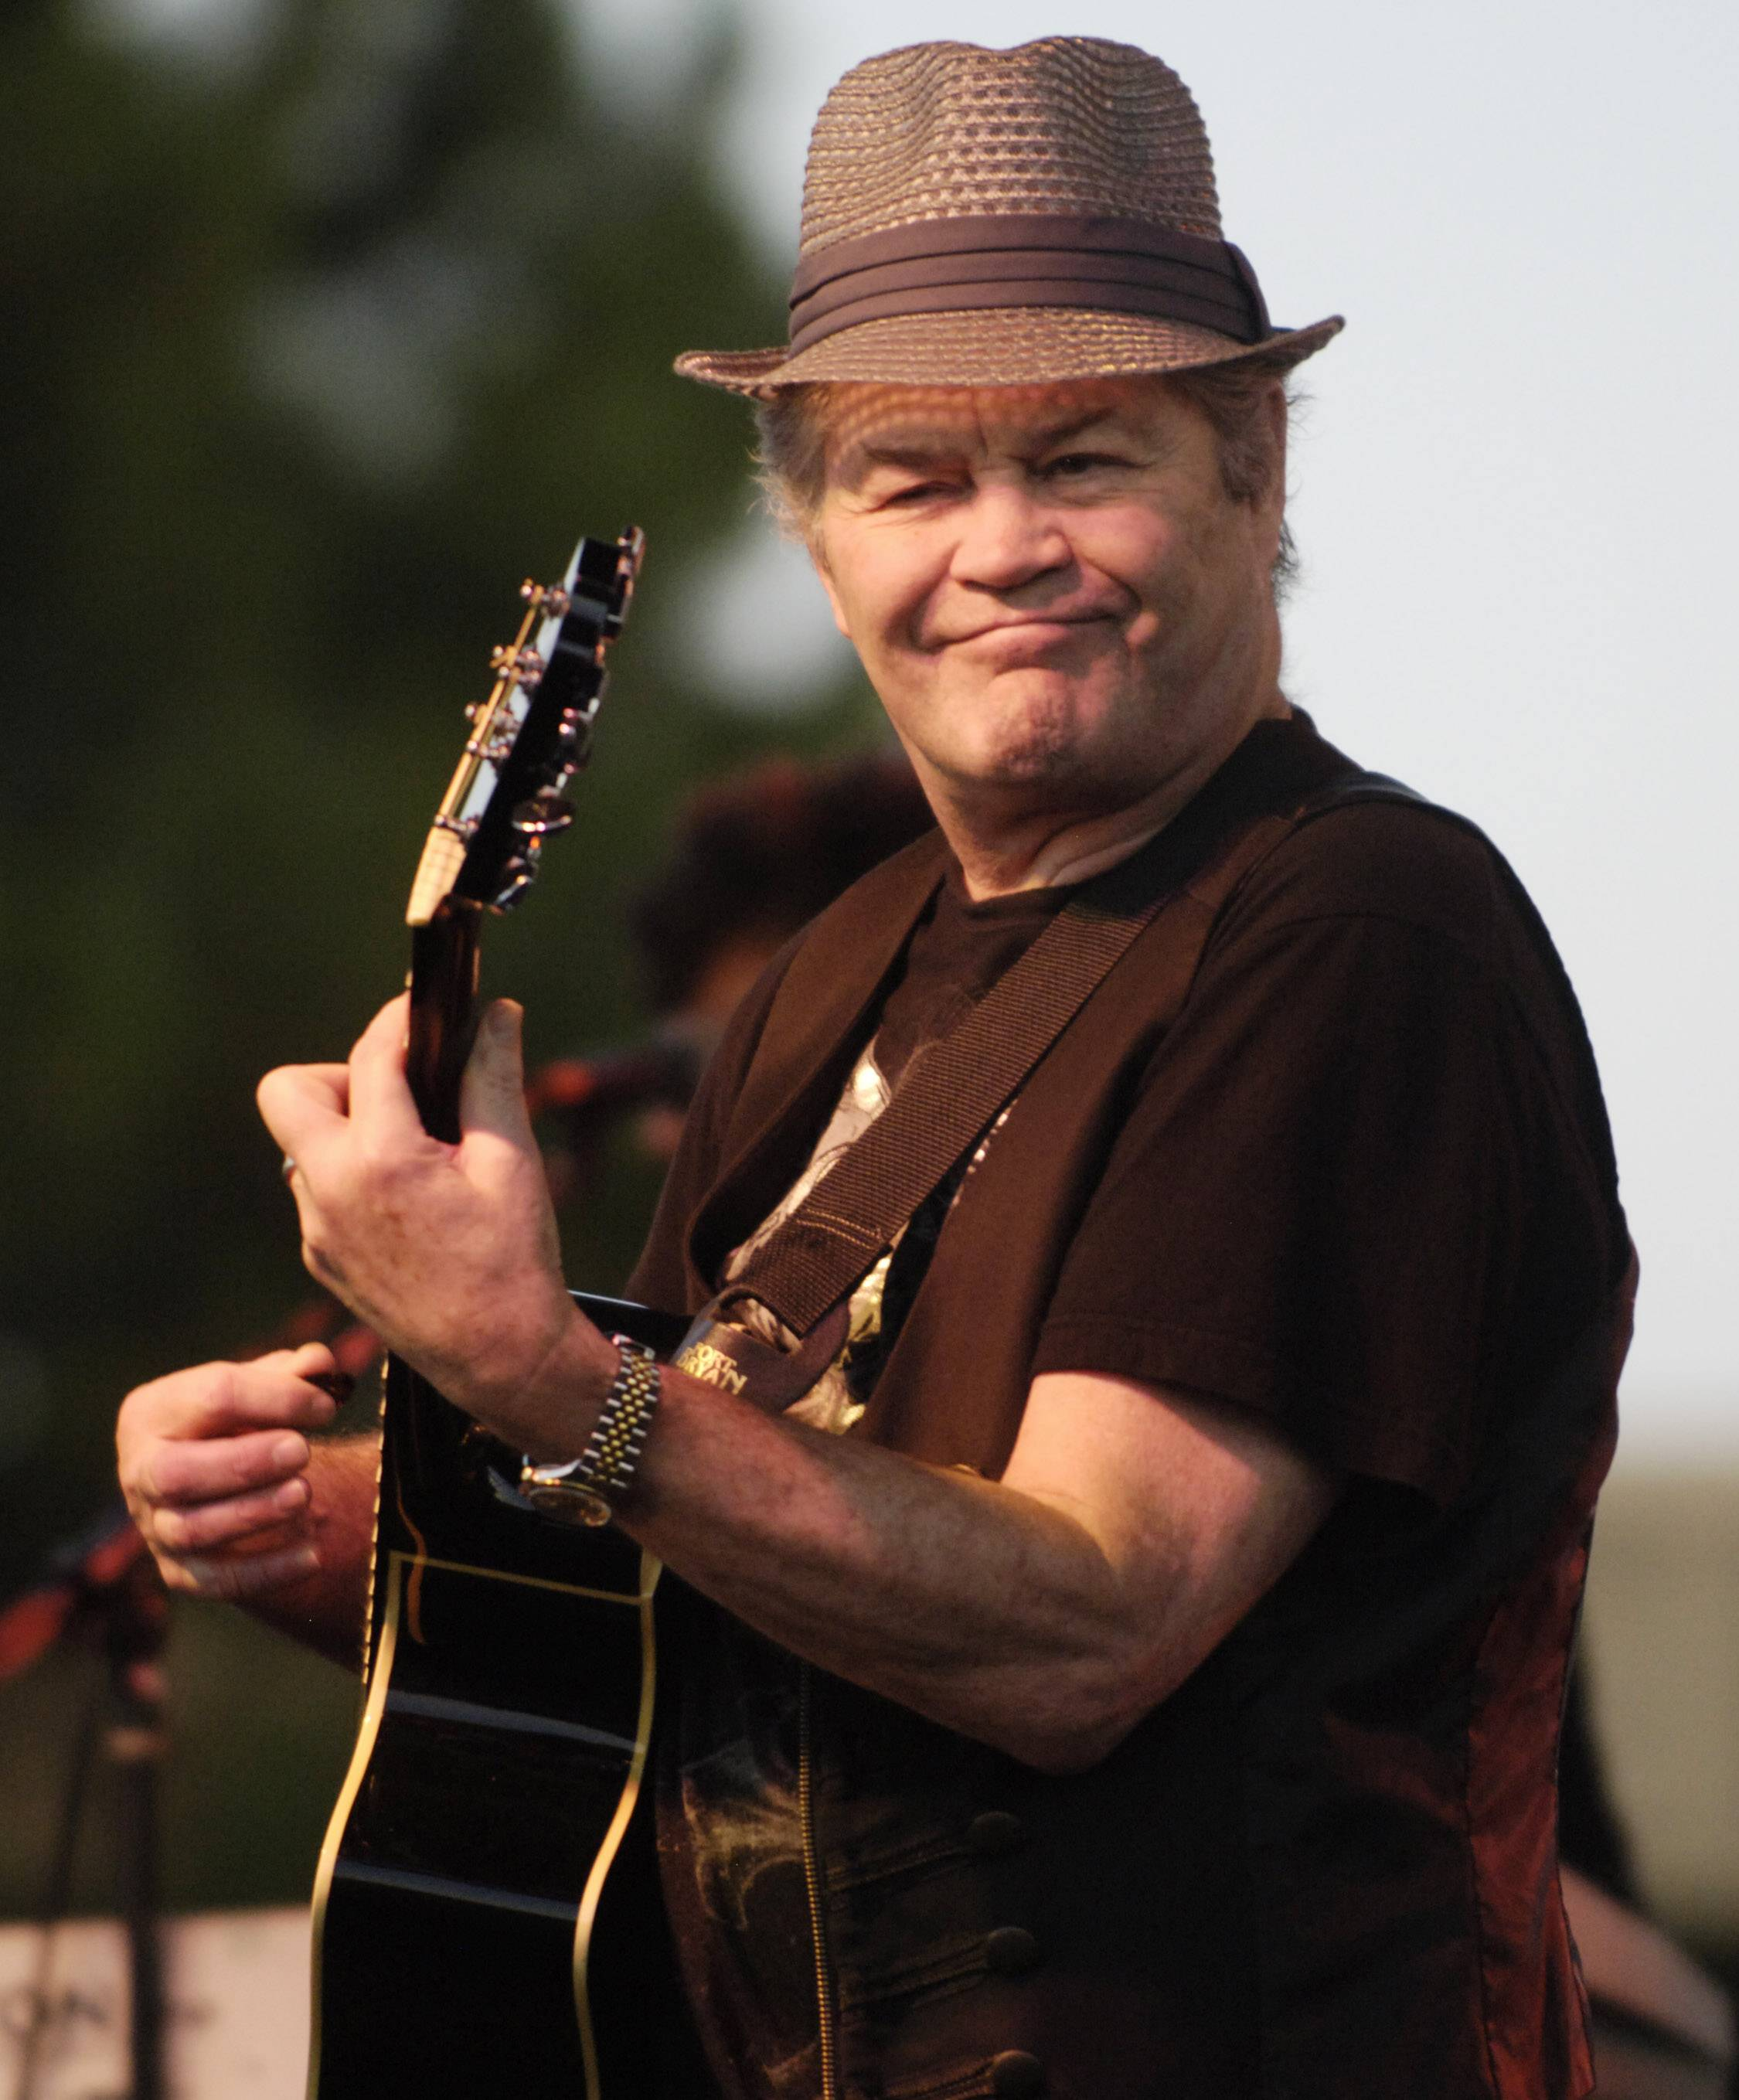 micky dolenz 2015micky dolenz interview, micky dolenz, micky dolenz monkees, micky dolenz biography, micky dolenz youtube, micky dolenz discography, micky dolenz net worth, micky dolenz daughter, micky dolenz circus boy, micky dolenz tour, micky dolenz tour dates, micky dolenz imdb, micky dolenz 2015, micky dolenz twitter, micky dolenz facebook, micky dolenz furniture, micky dolenz the mgm singles collection, micky dolenz wife, micky dolenz going down, micky dolenz daughter actress